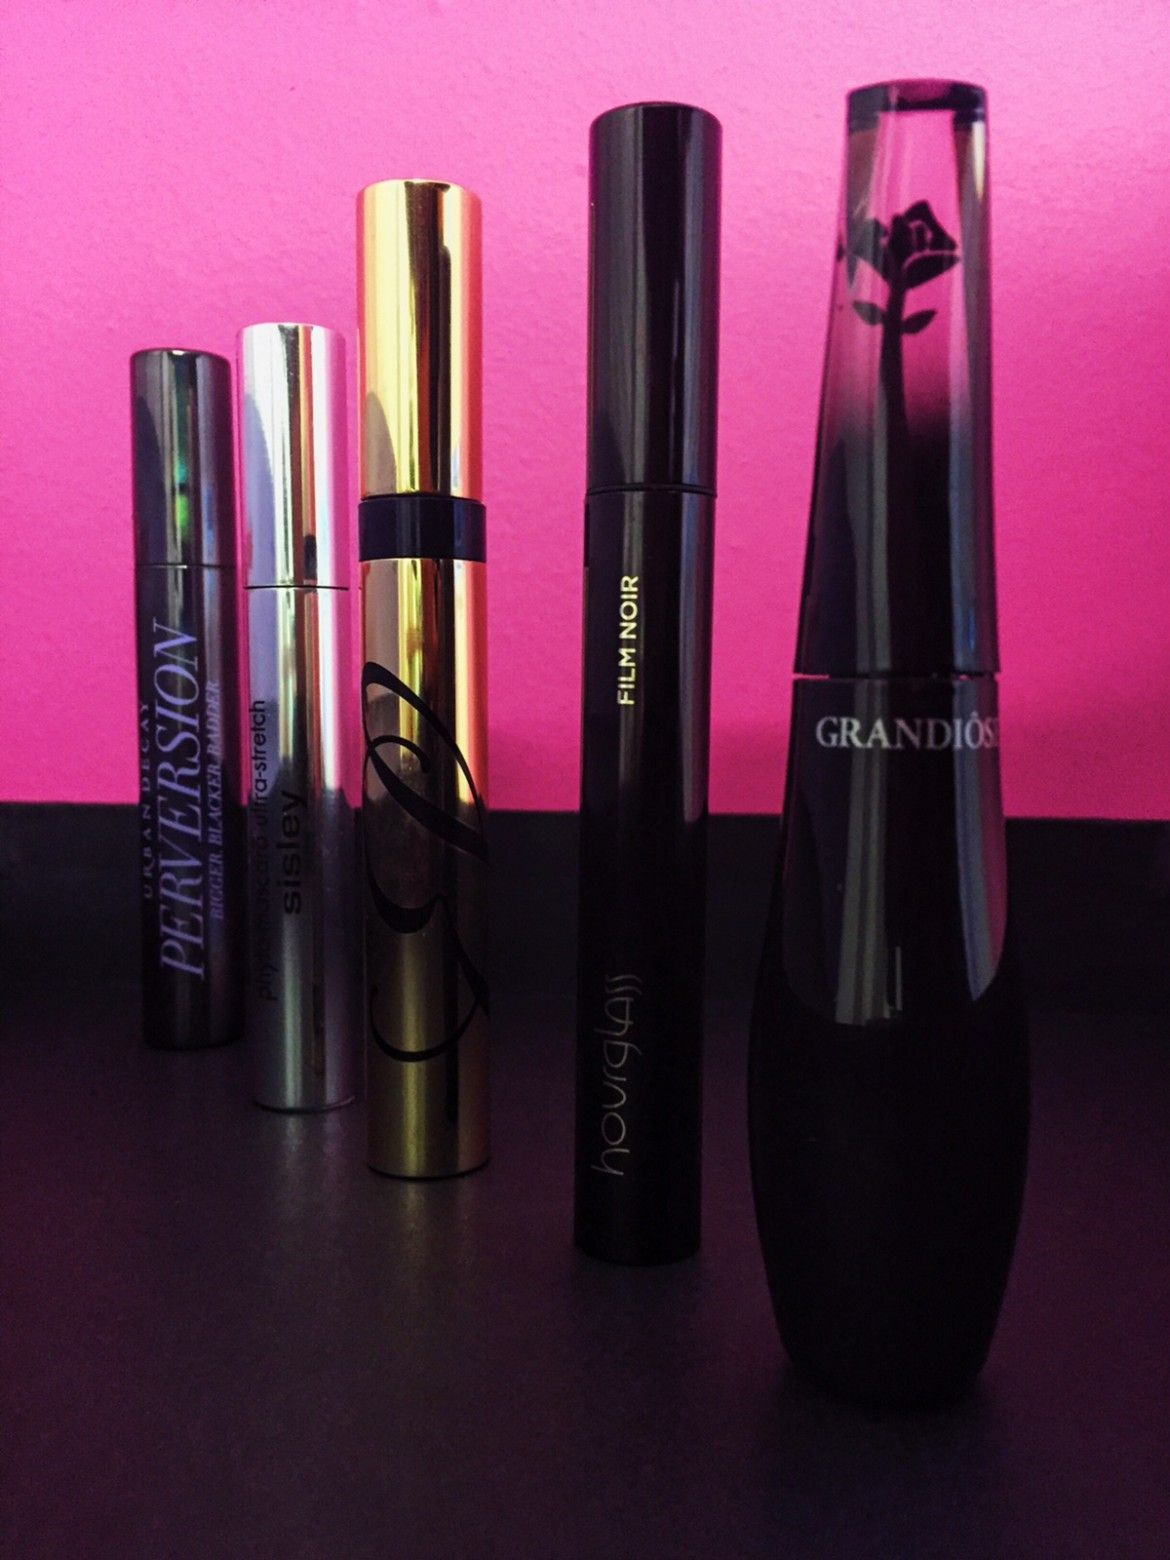 WOW BEAUTY EDIT of… Mascaras with impact! Holistic